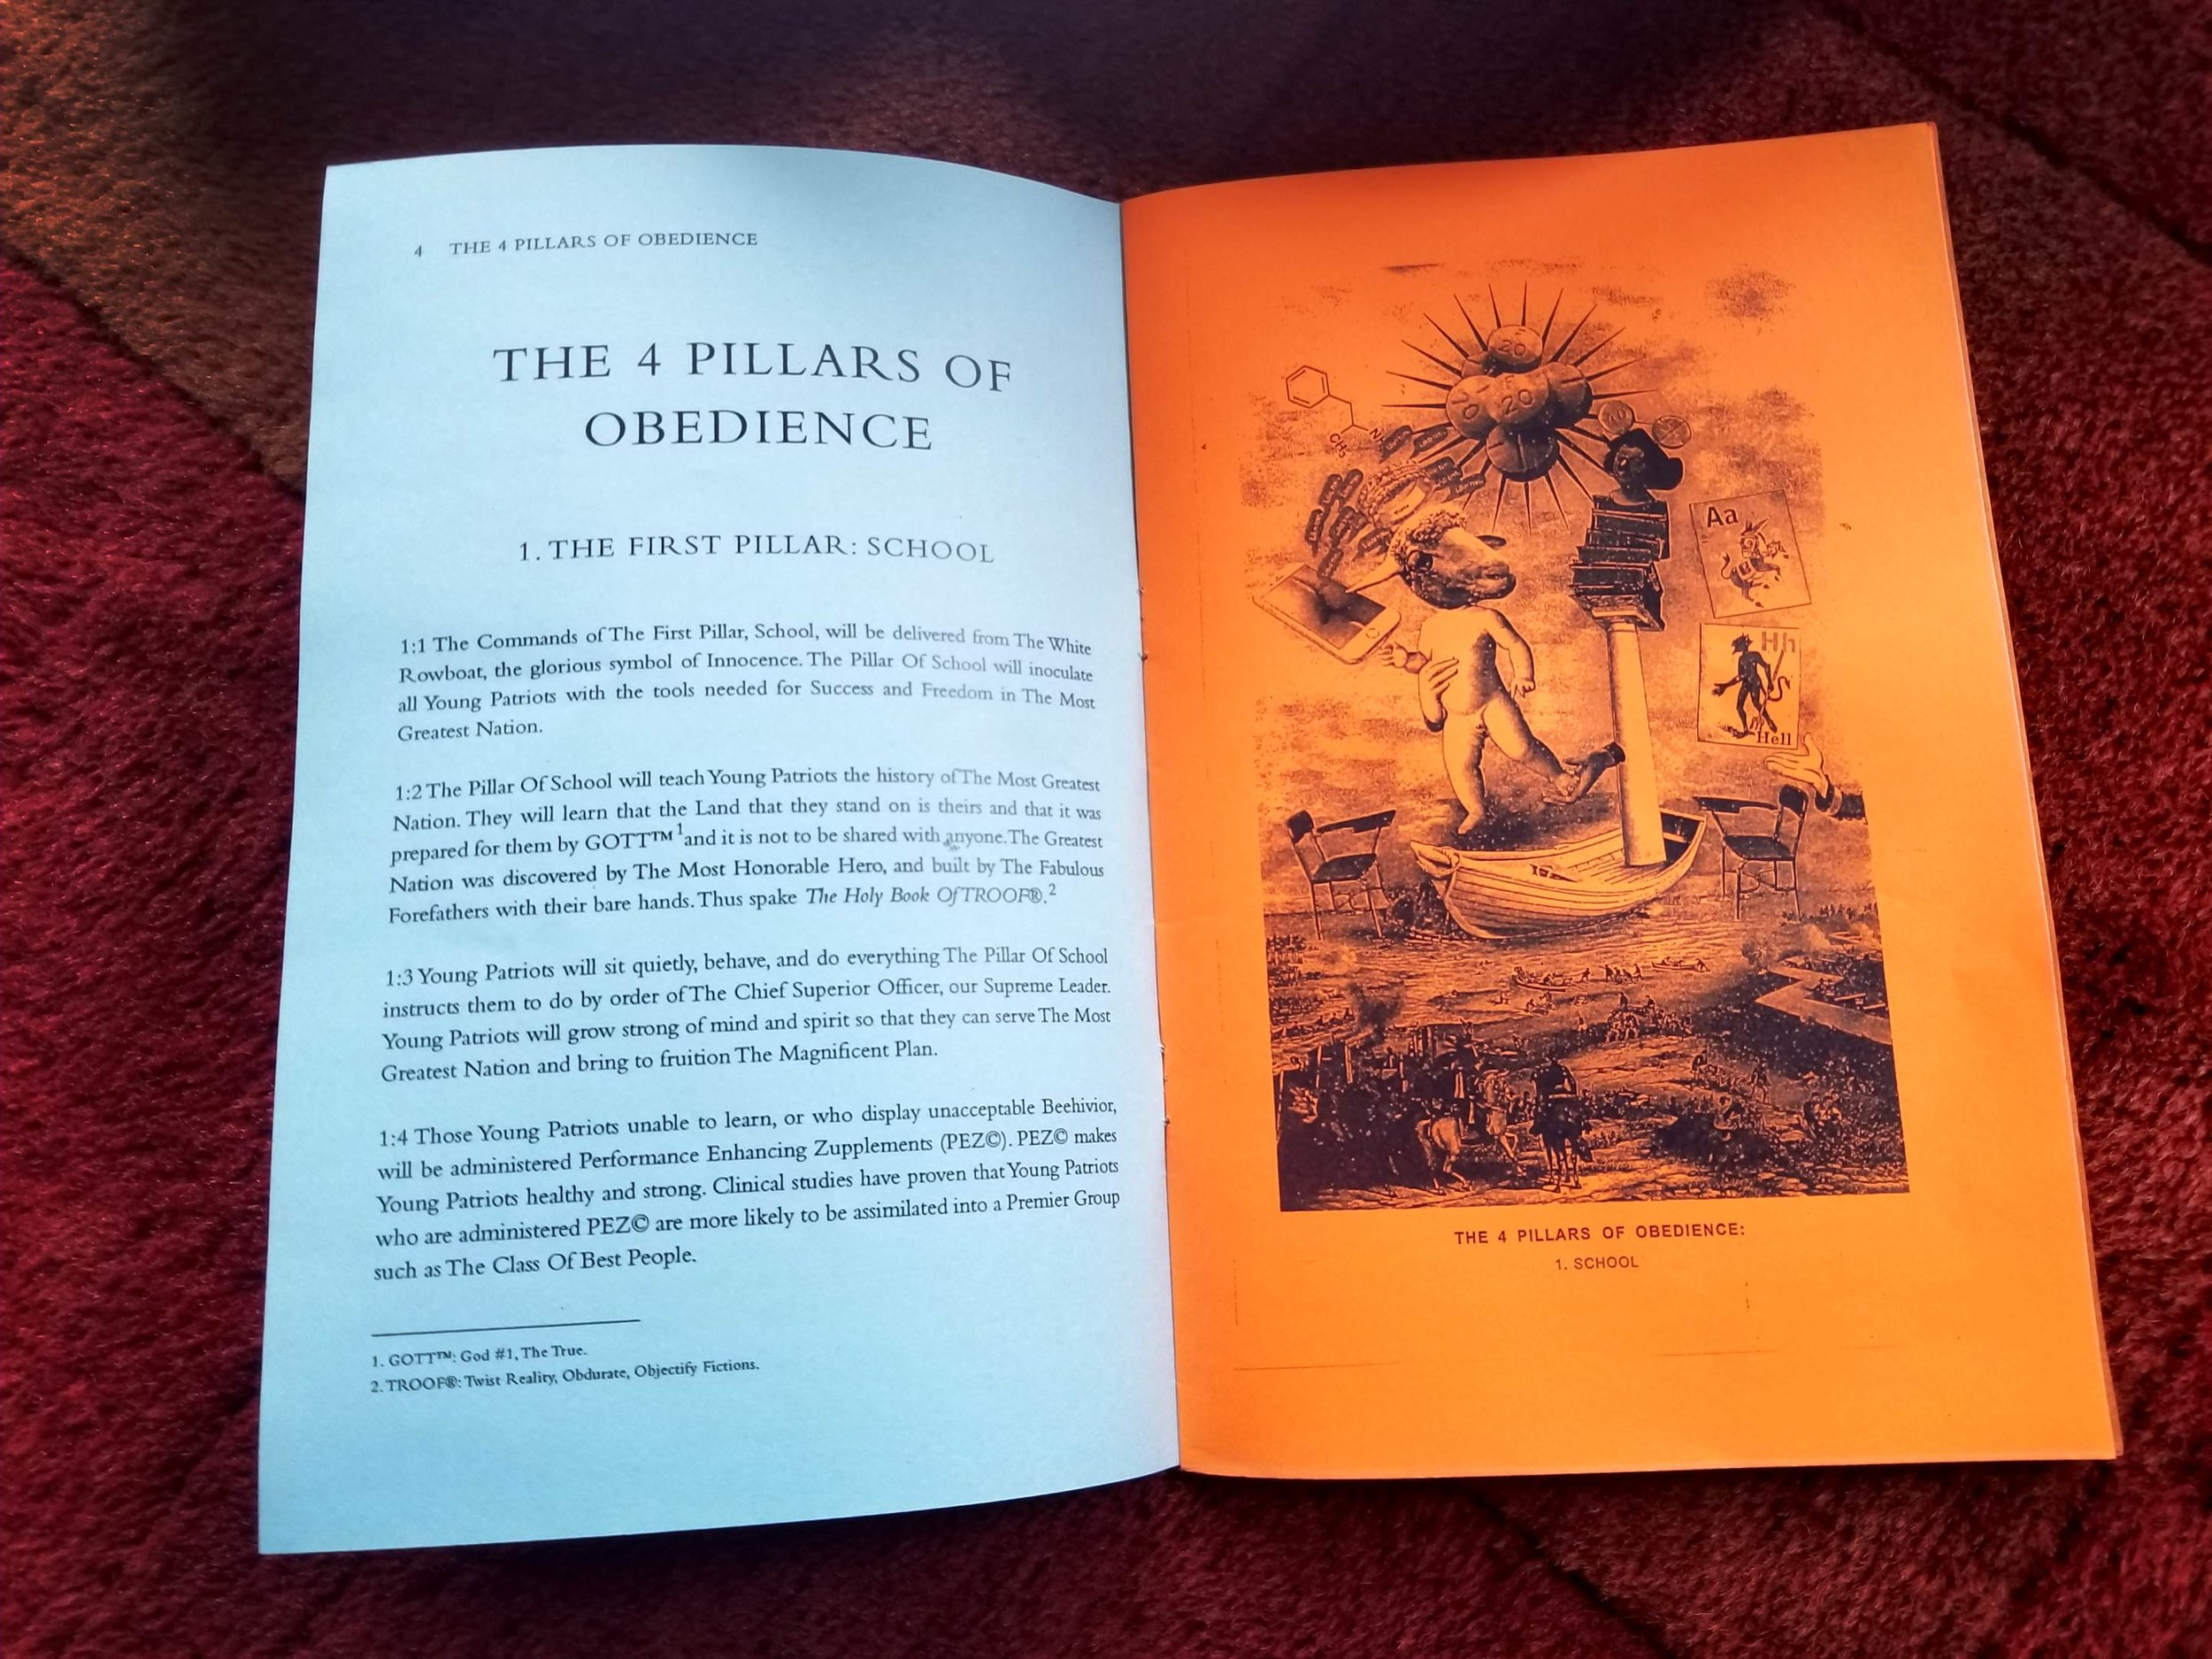 "The Four Pillars Of Obedience - FOREWORDThe documents now collectively referred to as ""The 4 Pillars Of Obedience"" have been a curiosity to scholars since they were first discovered nearly three decades ago among the detritus of a cargo ship that wrecked off the coast of Martha's Vineyard in the early 20th century. The pages, torn from what appears a ship's log, were preserved in an empty rum bottle. Much of the text has been ravaged by time and conditions, but many of the pages are remarkably well preserved. Particularly those containing the list known as ""The 4 Pillars,"" which has been receiving a lot of attention lately due to its use of language that eerily foreshadows subjects and events today—information and technology that the anonymous author could not have known about nearly 100 years ago when it was written.The author sometimes refers to himself as the Captain of the cargo ship, and at other times a prisoner who has been exiled to a life at sea due to madness, or crime, or both. The author endearingly calls his ship/prison ""my little Narrenschif"" (German for ""Ship Of Fools""). We know very little about the cargo ship other than that the author says it was in the business of trafficking a wild parade of inhabitants, all exhibiting various states of mental illness, up and down the New England coastline. It's unclear whether his use of the term ""fools"" for his shipmates was meant pejoratively or complimentary as he alternates in this opinion throughout his writings.Most of the text is on the subject of a bizarre ""authoritarian utopia"" where everyone blissfully does as they're told and welcomes their oppression. ""The 4 Pillars"" list seems to function as an organizing principle for this ""imaginary"" society. The four pillars (School, Church, Work, and Law) are like masts borne by four different boats, each with its own set of commandments, laws, and edicts. Some have argued that they are meant to be taken literally as a code of conduct onboard the ""little Narrenschif,"" which itself may have had multiple personalities and functioned in some capacity as all four water vessels listed: a rowboat, an ark, a tugboat, and a battleship. The list may have been a set of rules—a very colorful set of rules—designed to appeal to the cacophonic language of the insane crew that was housed on this floating asylum.The majority of scholars, however, tend to agree that the author meant for the list to be a sarcastic condemnation directed at New England high society, specifically his persecutors (whether real or imagined) who sentenced him to ""life as castaway.""""Those who have dropped anchor 'pon the Lande,"" the author writes in one fragment, ""they are the Mad.""He continues, in his rambling style, to belittle those who lash themselves to the mast of Reality (""Patriots,"" as he calls them), who go to work, who worship ""GOTT,"" who obey the law, and do as they're told, they are the ones that are truly insane. The author, on the other hand, along with his maniacal cast that disappoints him more often than not, is a little ship of fools, adrift at sea, rolling endlessly upon the waves, they are the ones that are free and who have not betrayed their Divine origin.Before we proceed with further commentary on the scant fragments of remaining text, let us first turn our attention to the best preserved pages that contain the very peculiar list known as, ""The 4 Pillars Of Obedience"":"